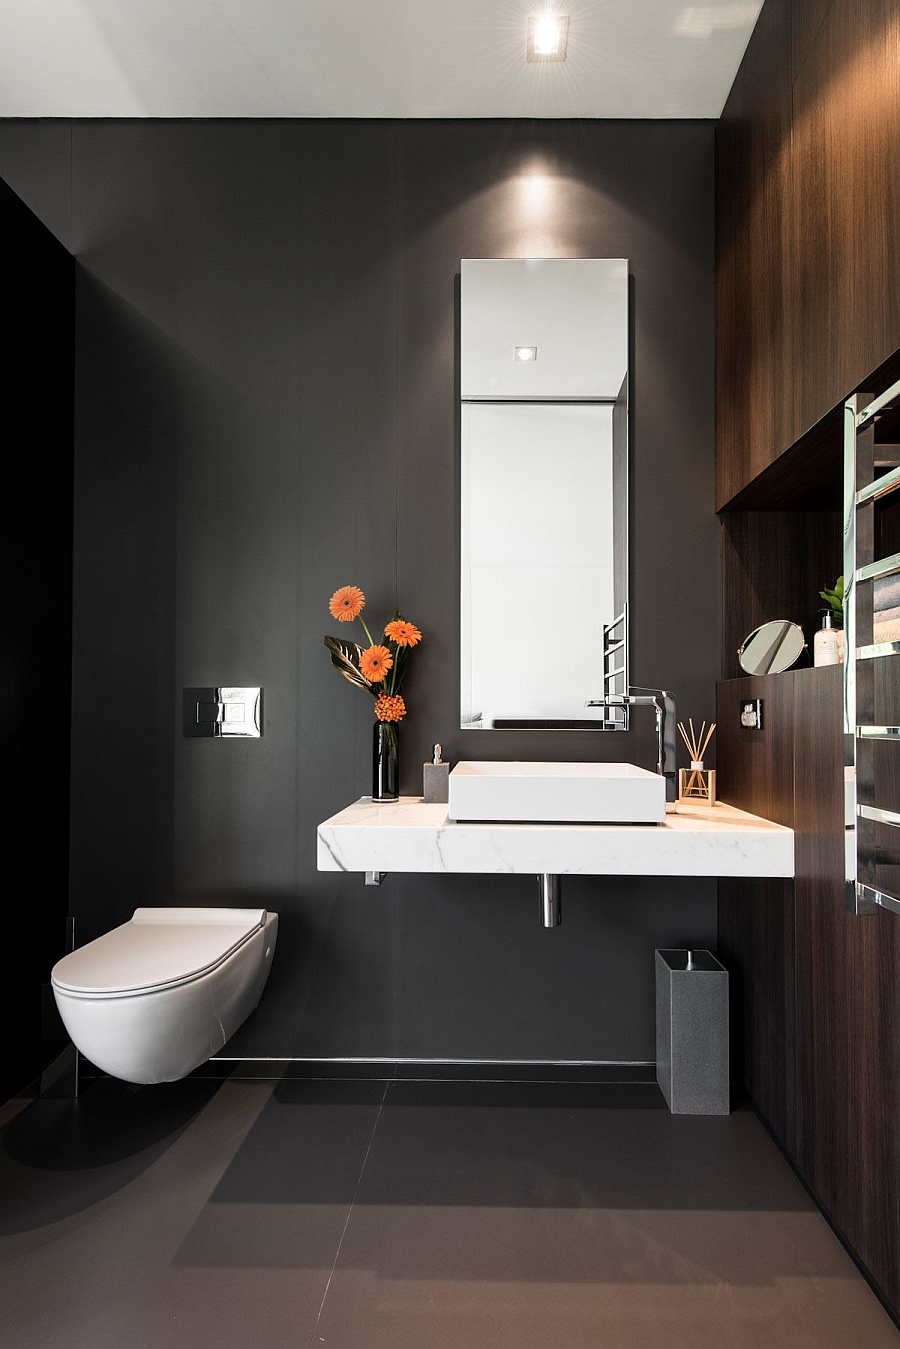 Adorable Design Of The Gray And White Bathroom With Black Grey Wall Ideas Added With White Toilets And Sink Ideas